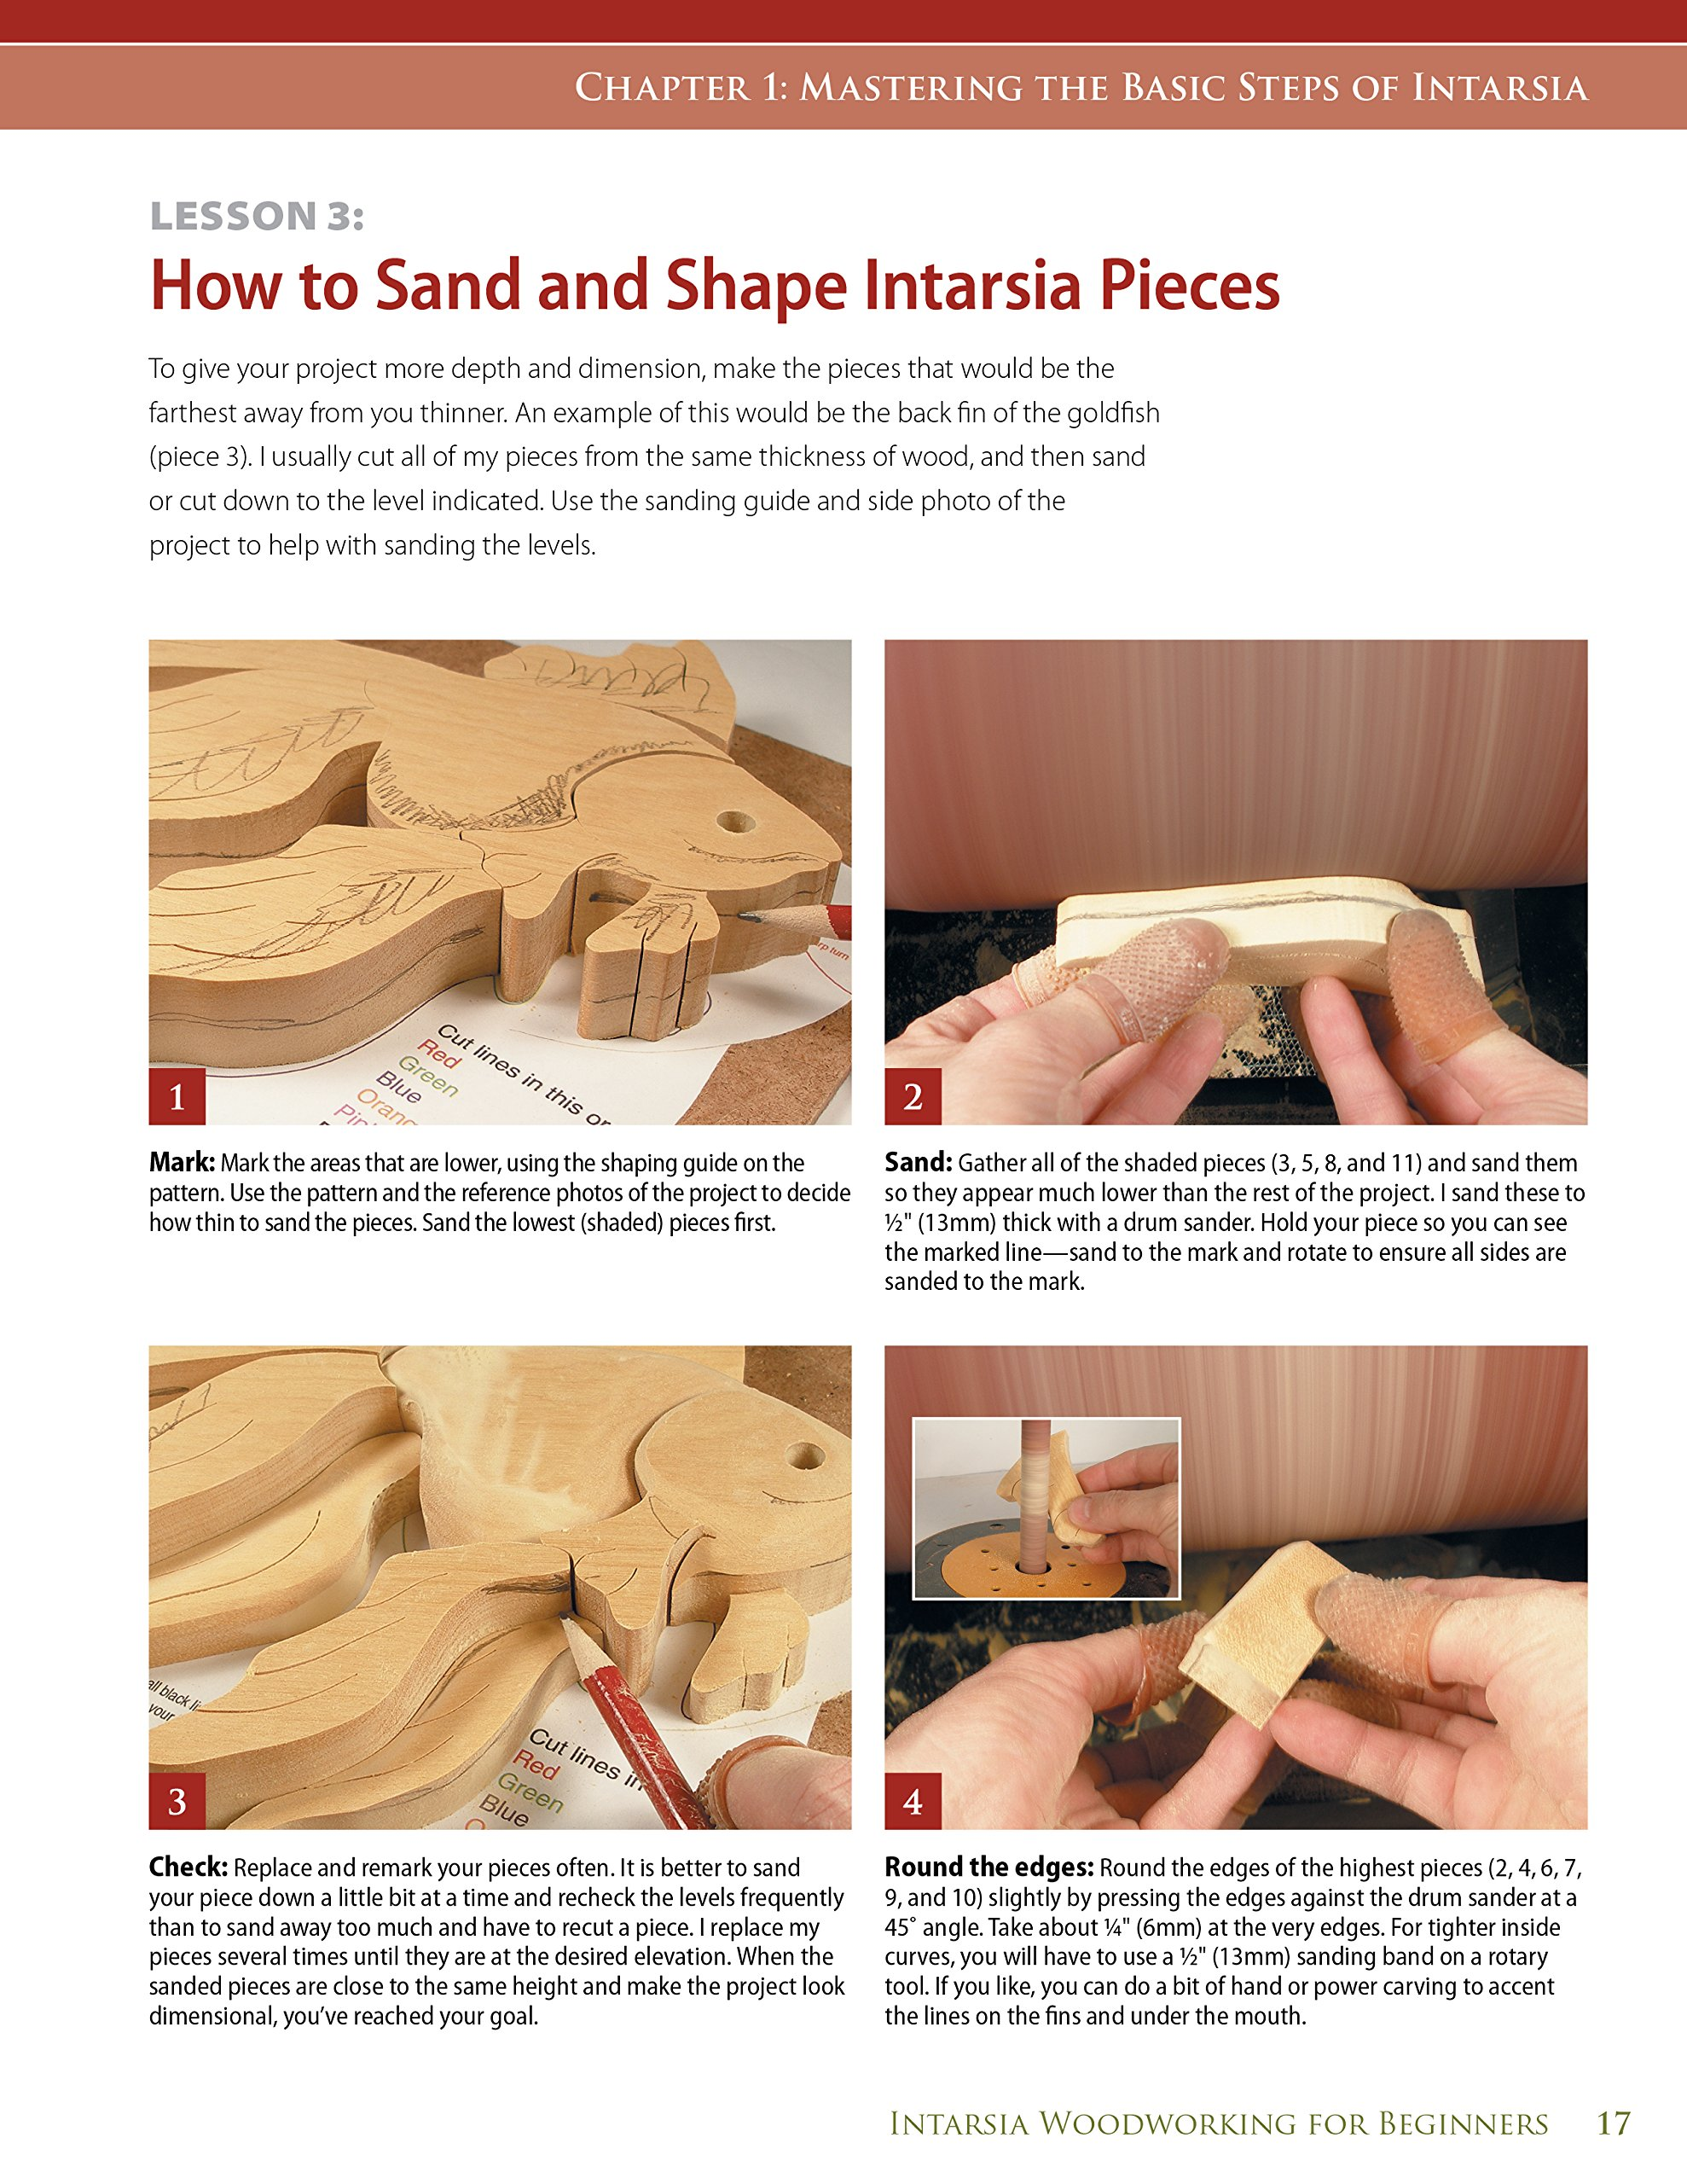 Intarsia Woodworking for Beginners: Skill-Building Lessons for Creating Beautiful Wood Mosaics: 25 Skill-Building Projects: Kathy Wise: 9781565234420: ...